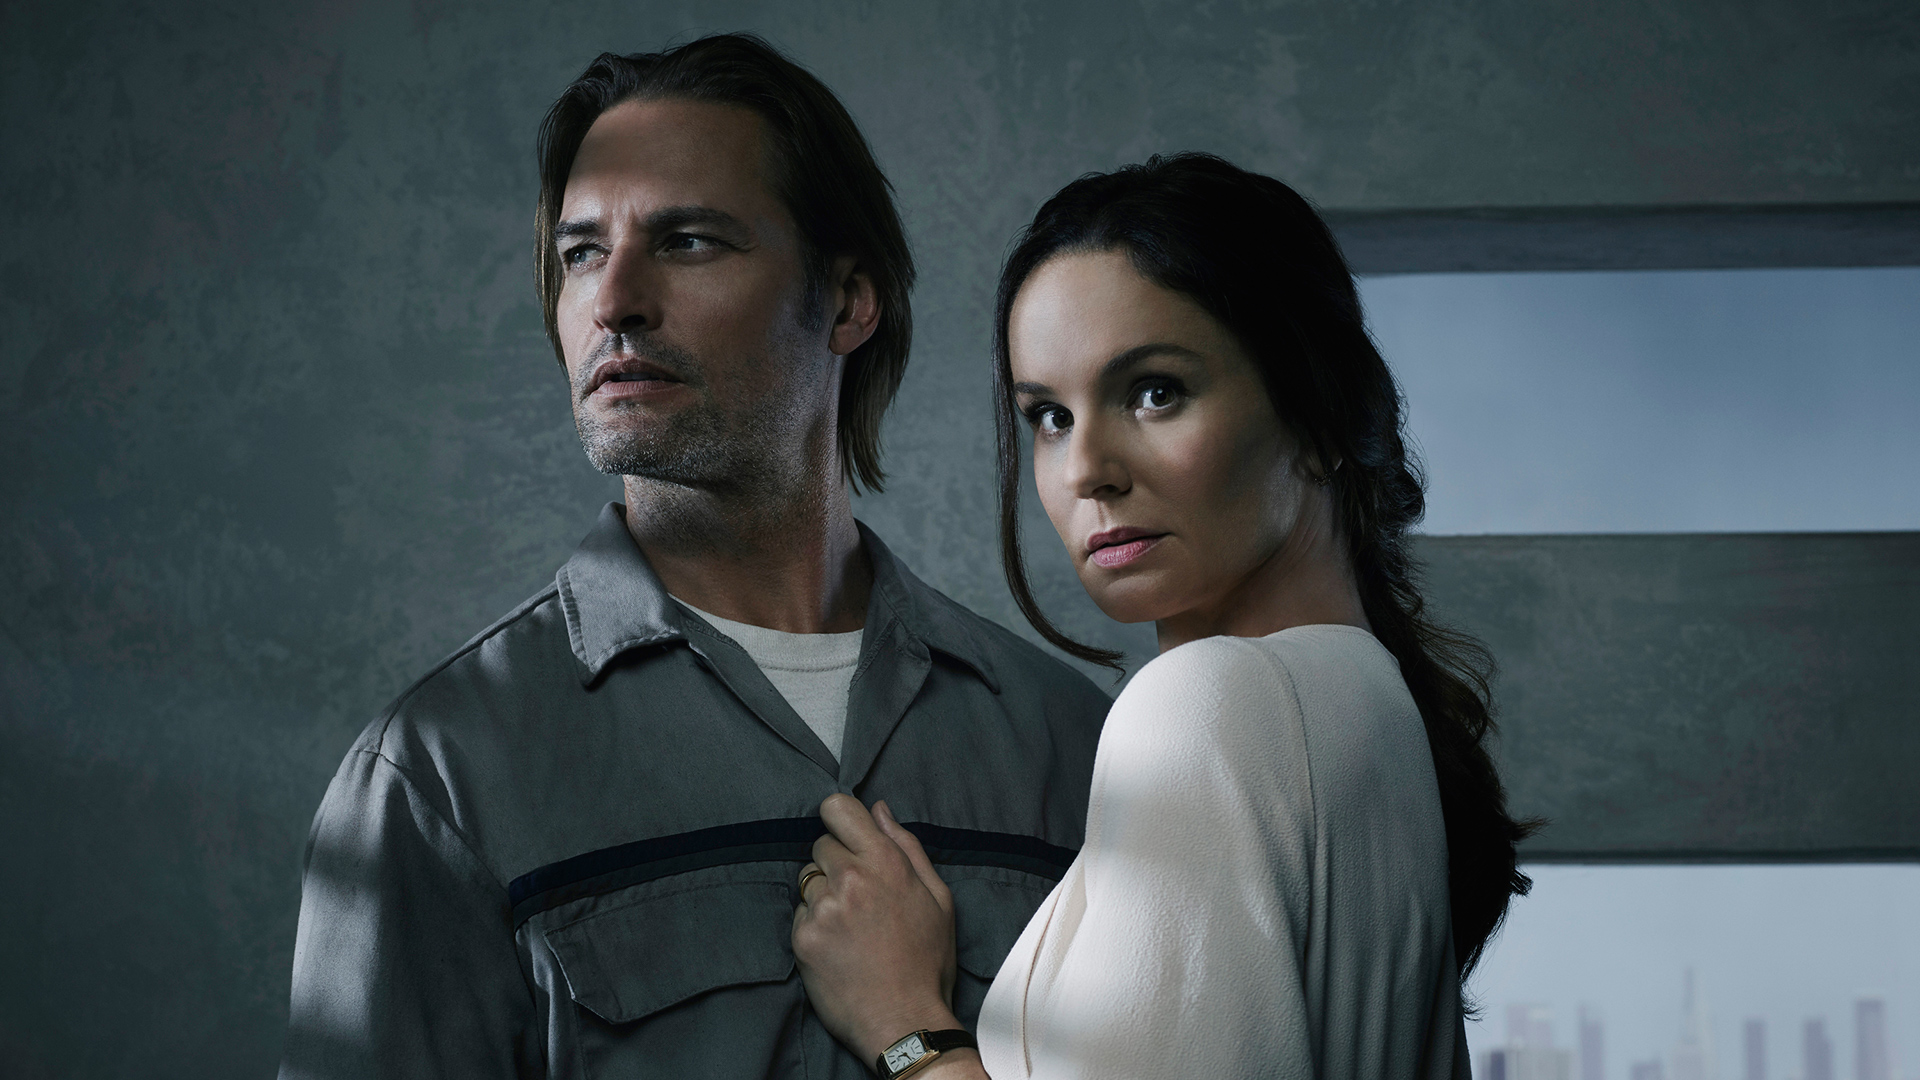 colony tv series, hd tv shows, 4k wallpapers, images, backgrounds